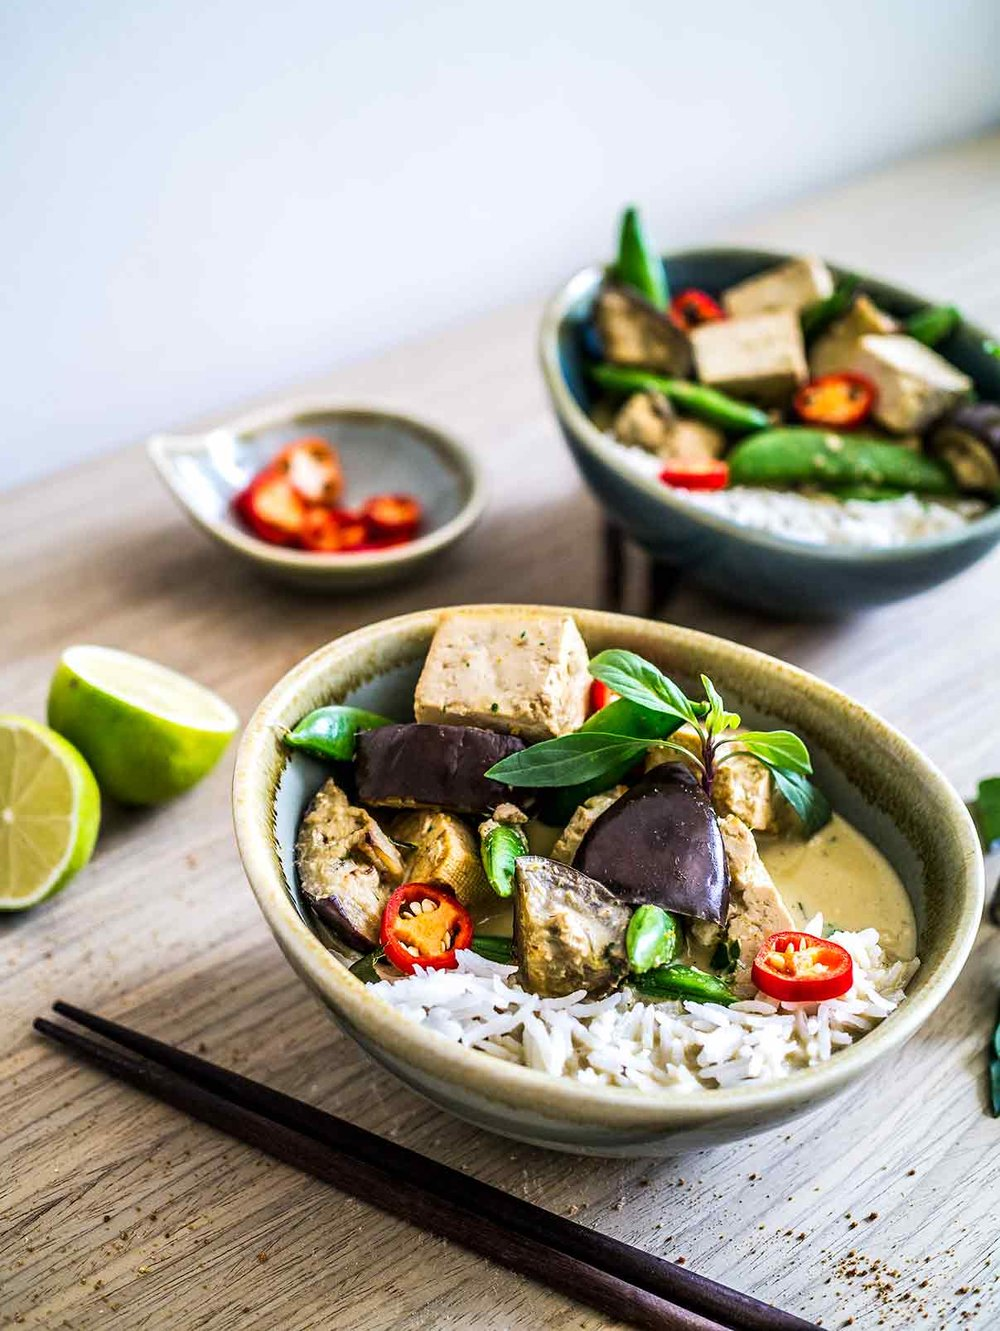 Thai green curry discover delicious for Cuisine 04 mains